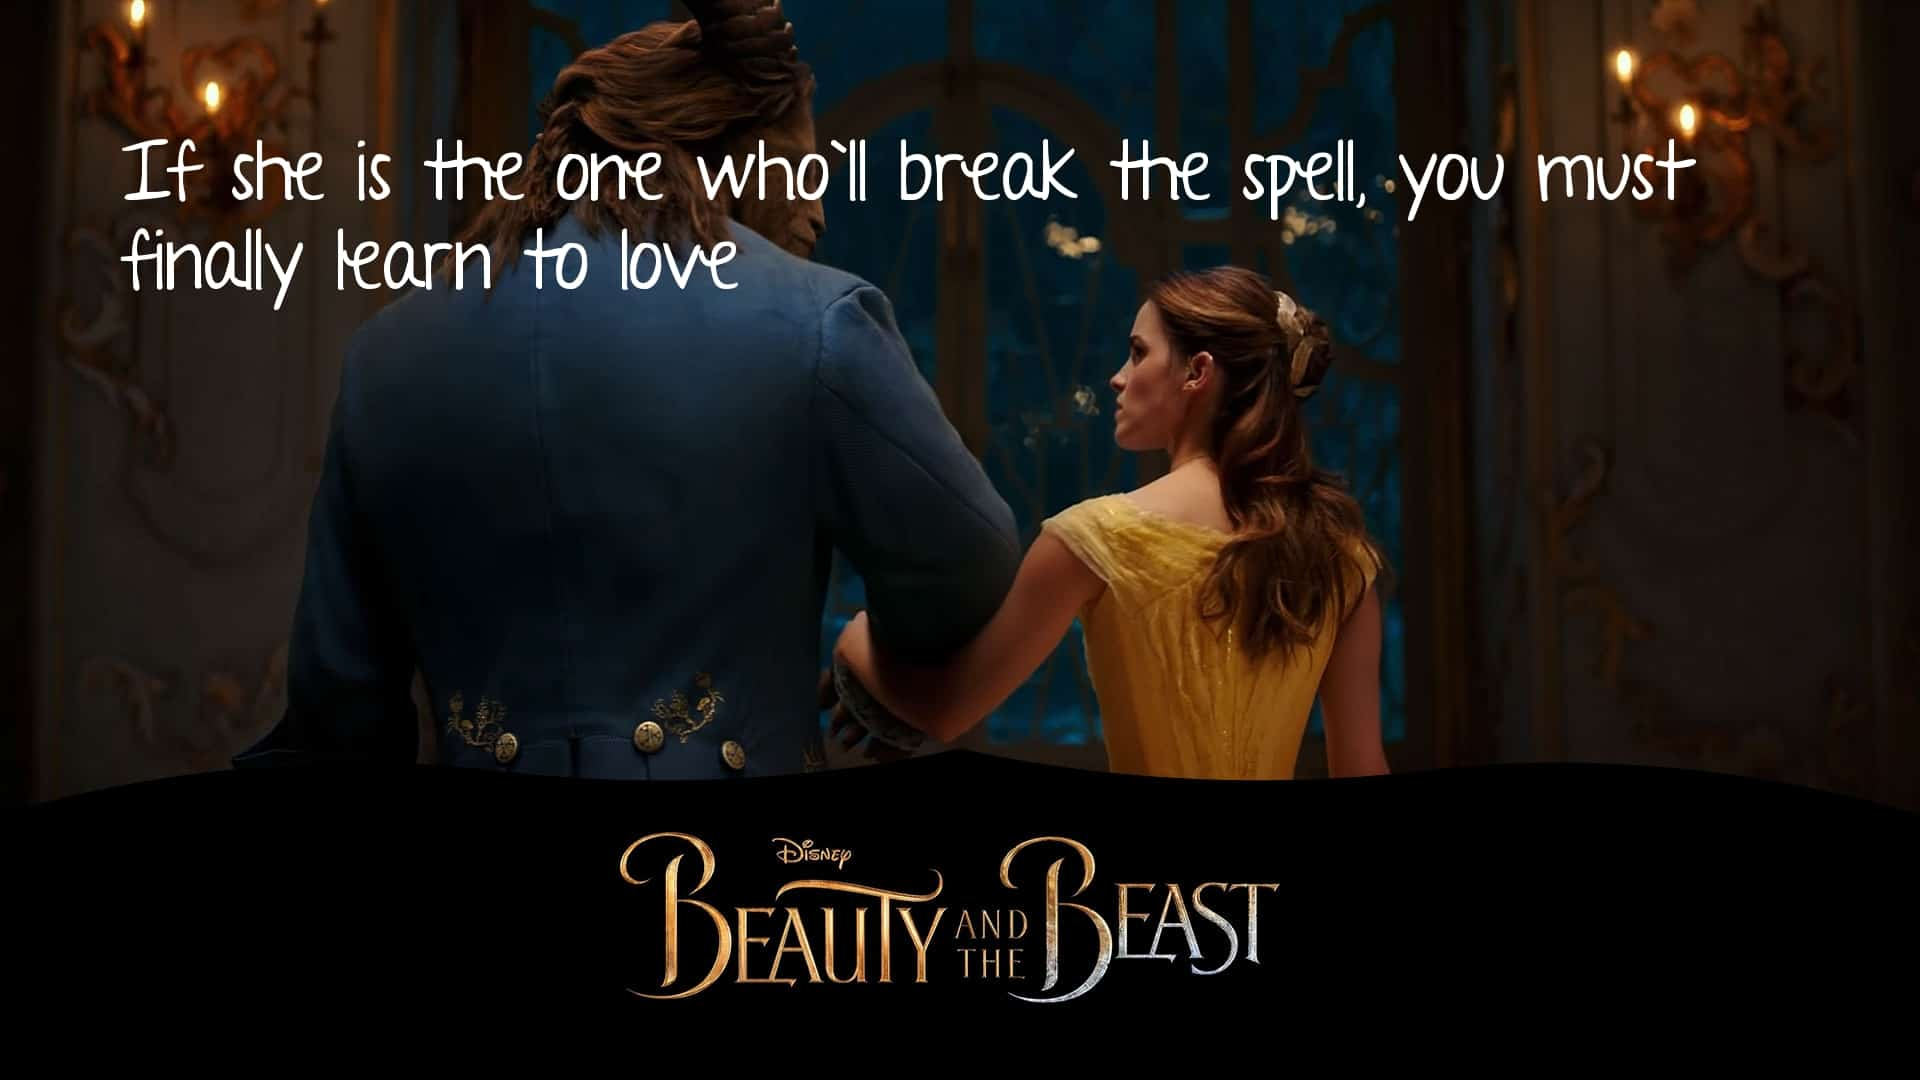 Quotes from beauty and the beast